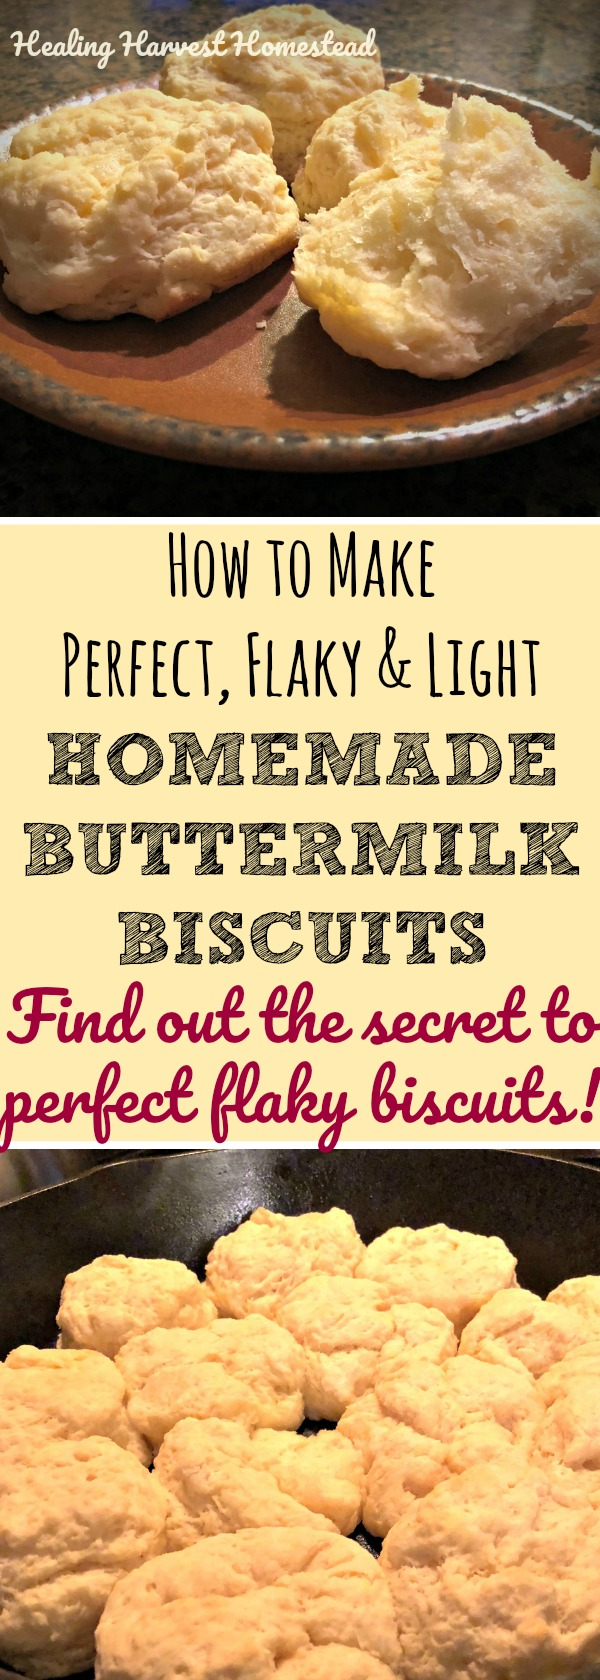 Have you been searching for the perfect, flaky, layered, light & fluffy homemade buttermilk biscuit recipe? YOU'VE FOUND IT! You'll love this buttermilk biscuit recipe--It's easy! It's fast! These are the best buttermilk biscuits I'll be you ever eat. You need this biscuit recipe, especially if you've been wondering how to get your biscuits more flaky and light!